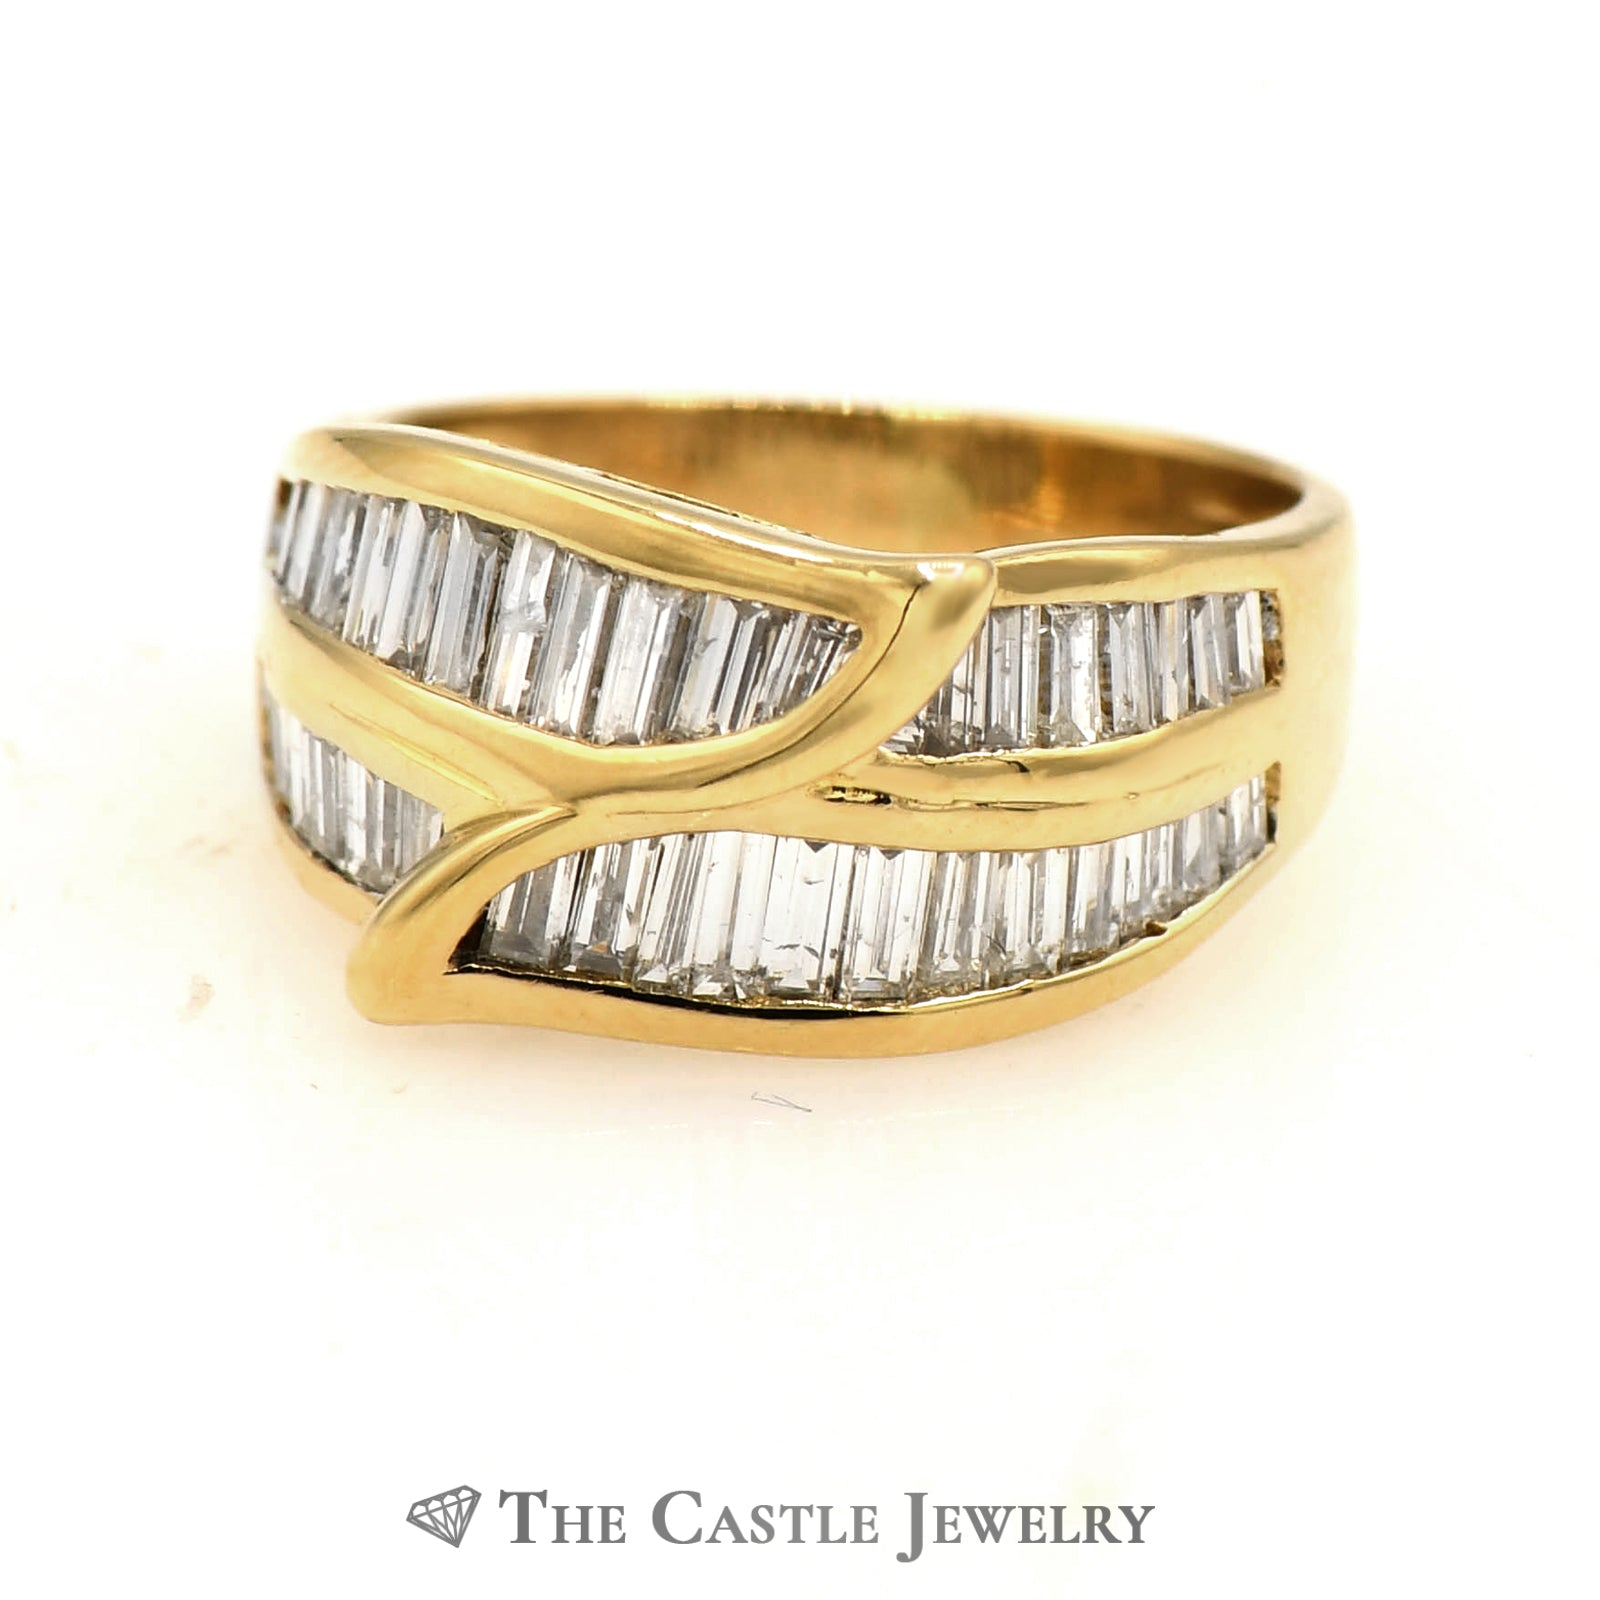 Beautiful Leaf Shaped Channel Set Baguette Cut Diamond Band in 18k Yellow Gold